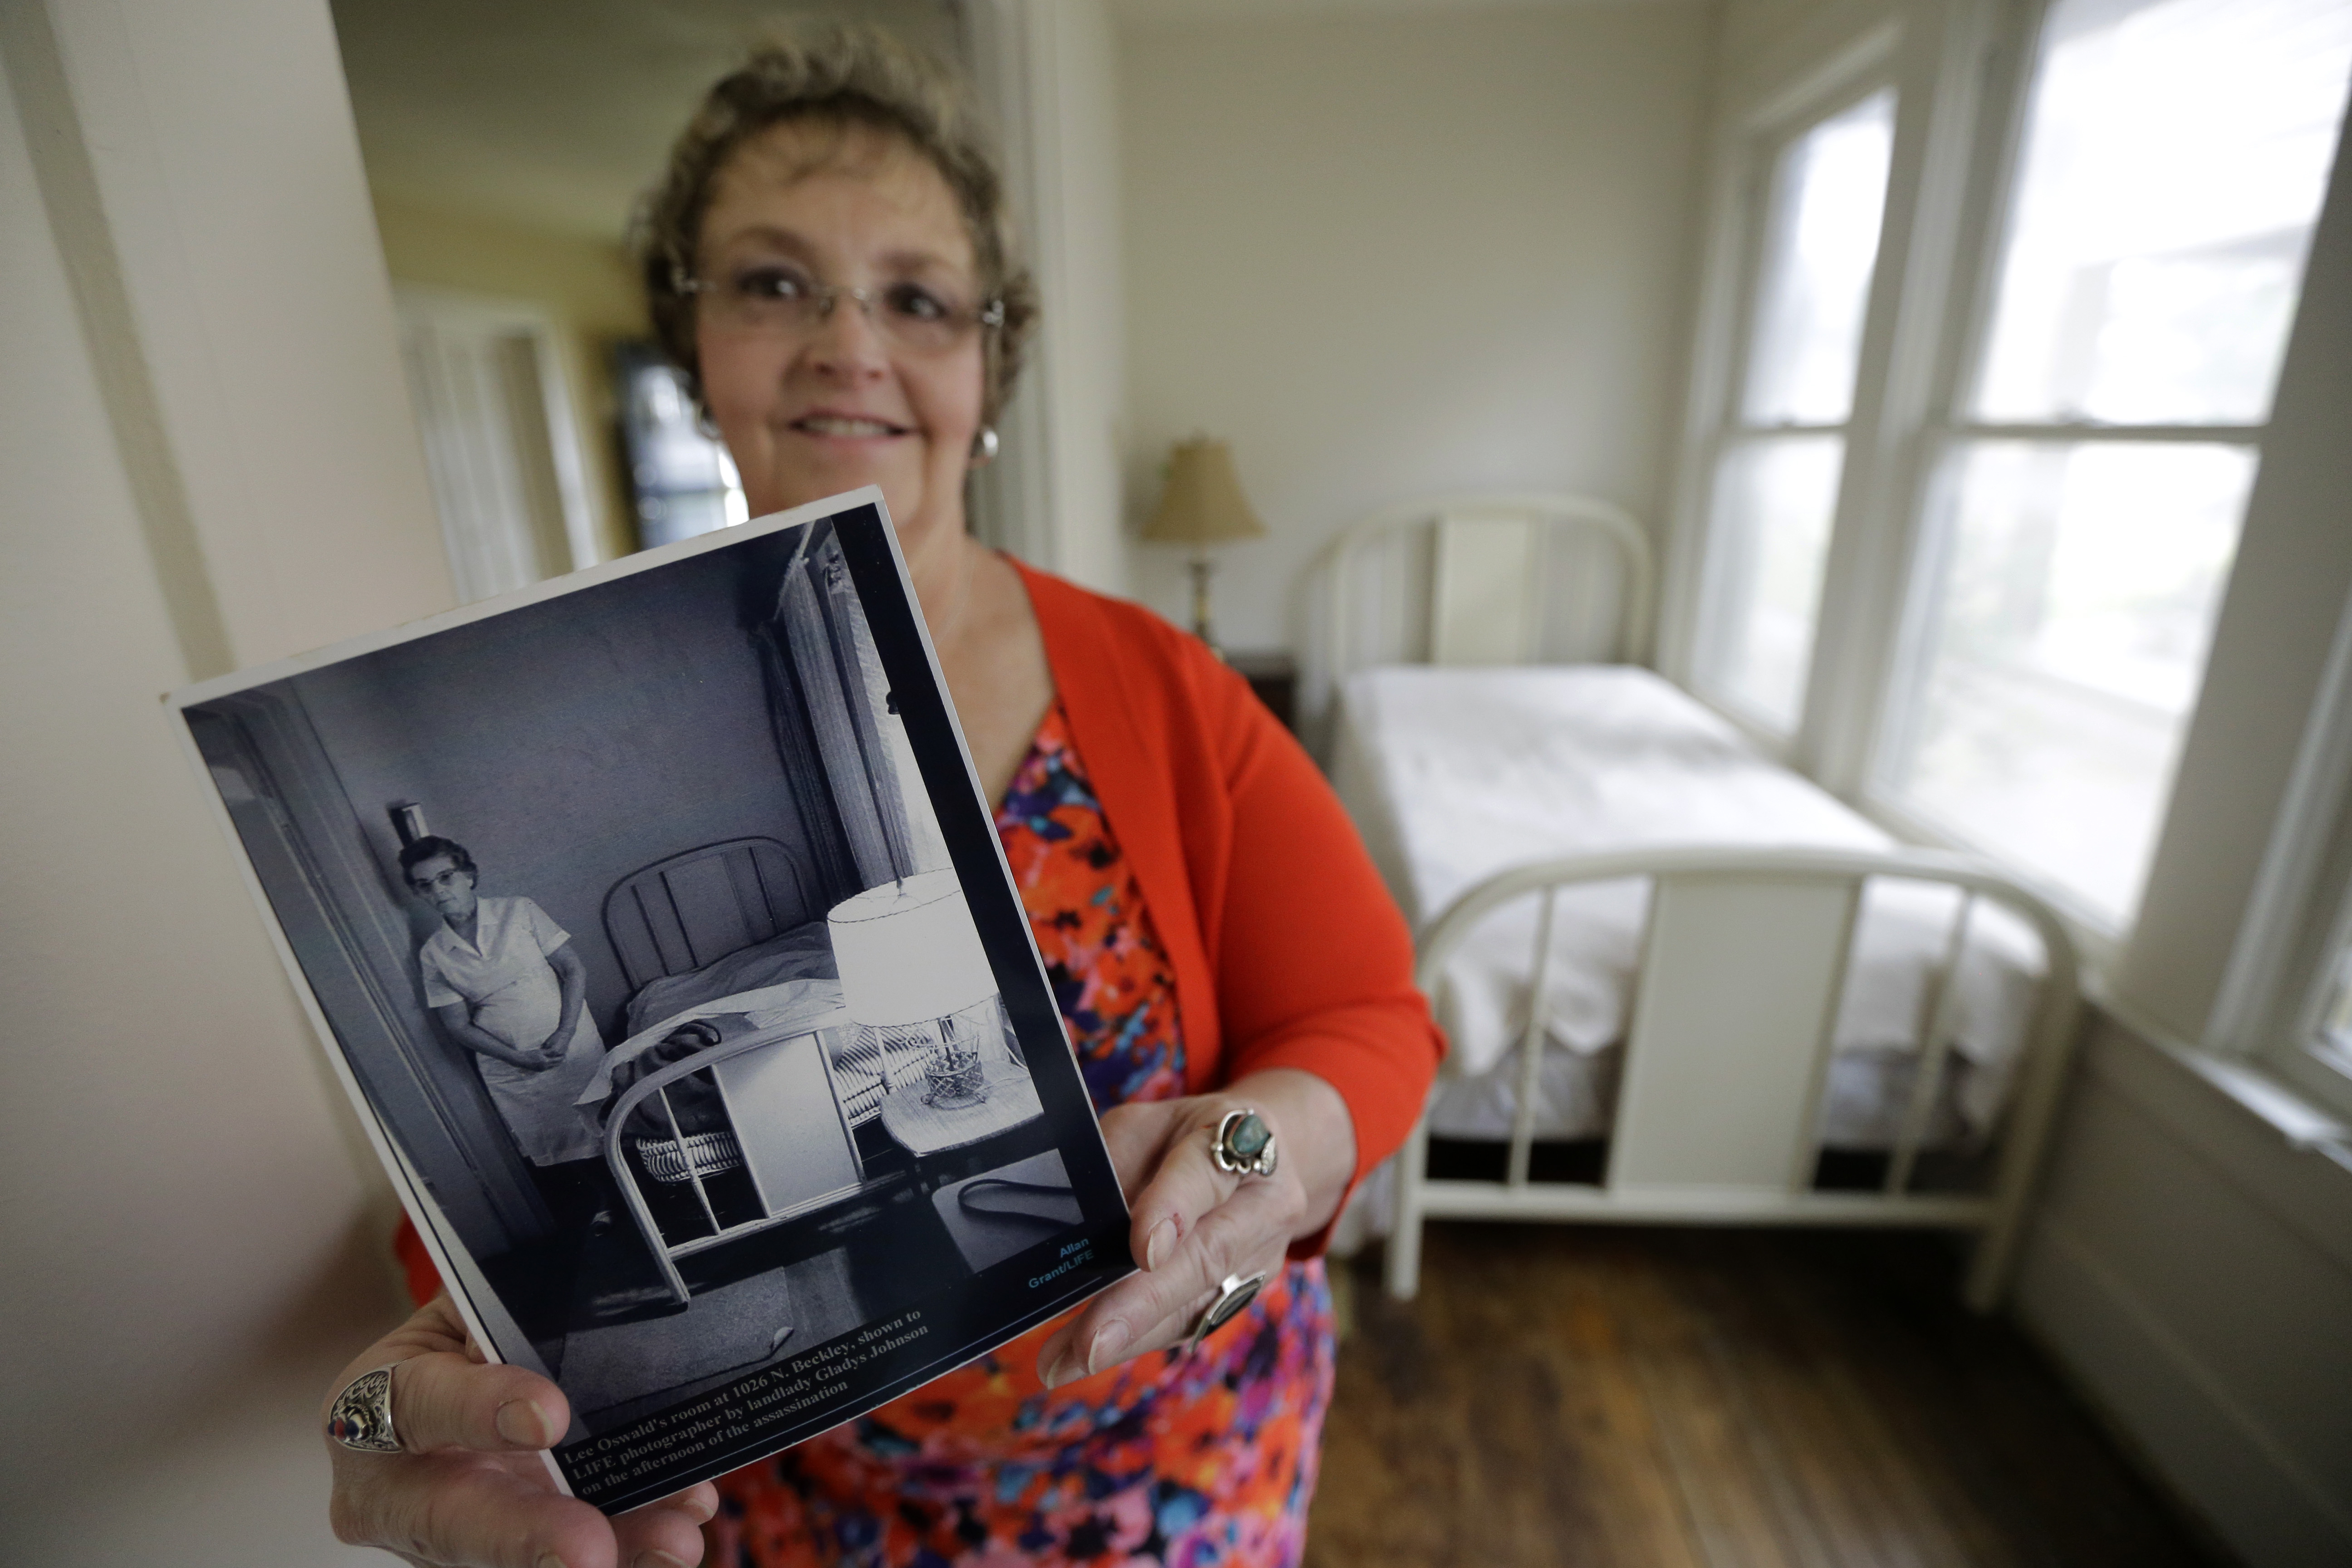 Dallas house where Lee Harvey Oswald lived to go up for sale